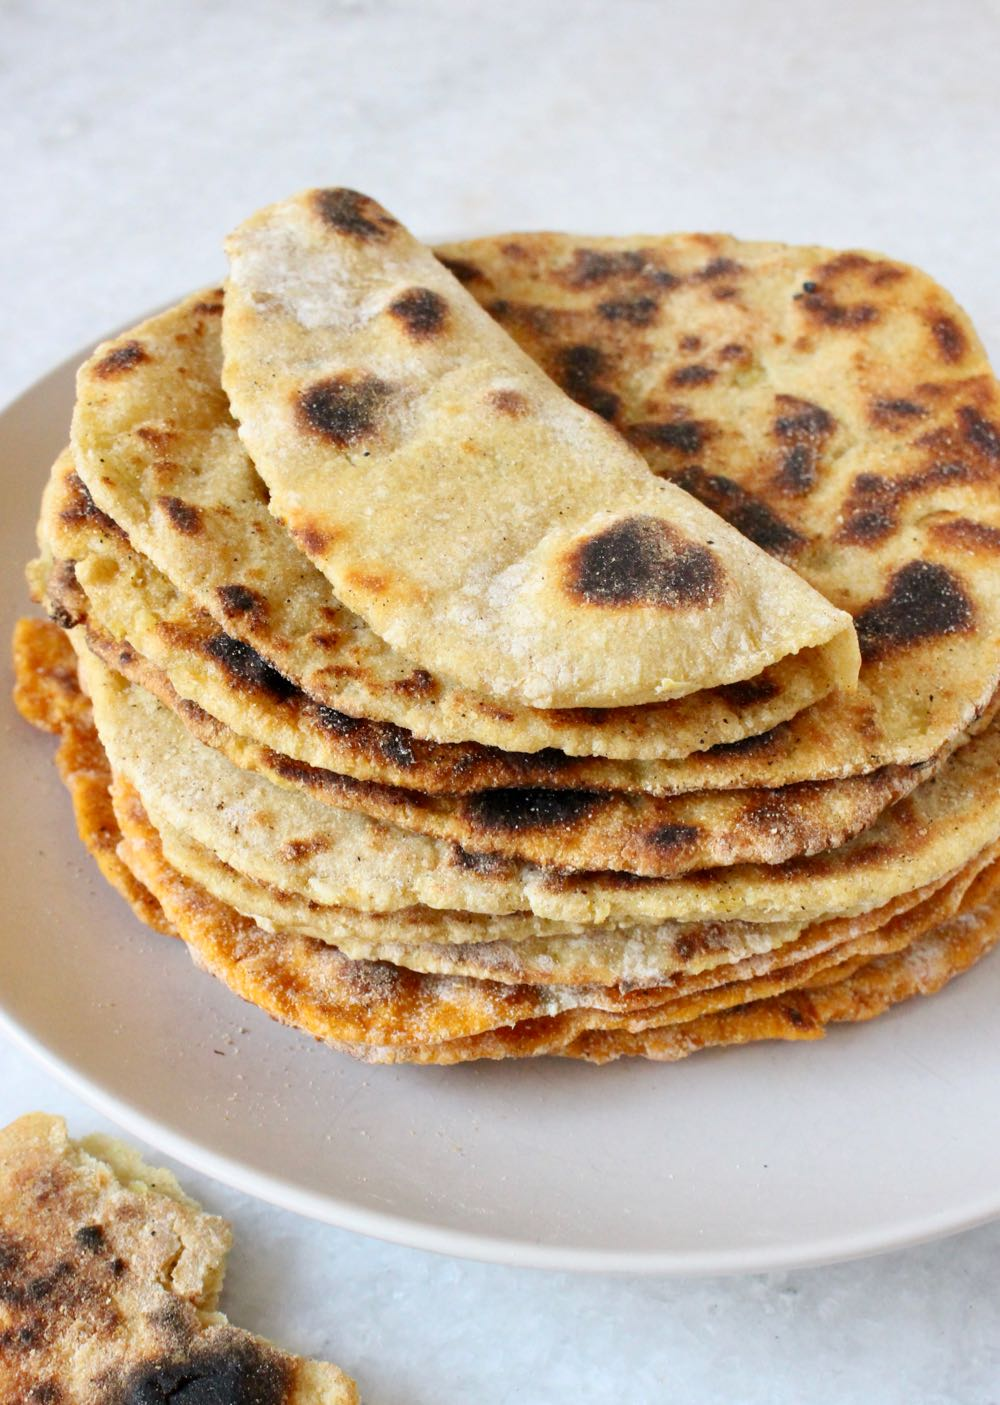 Stack of potato flatbread